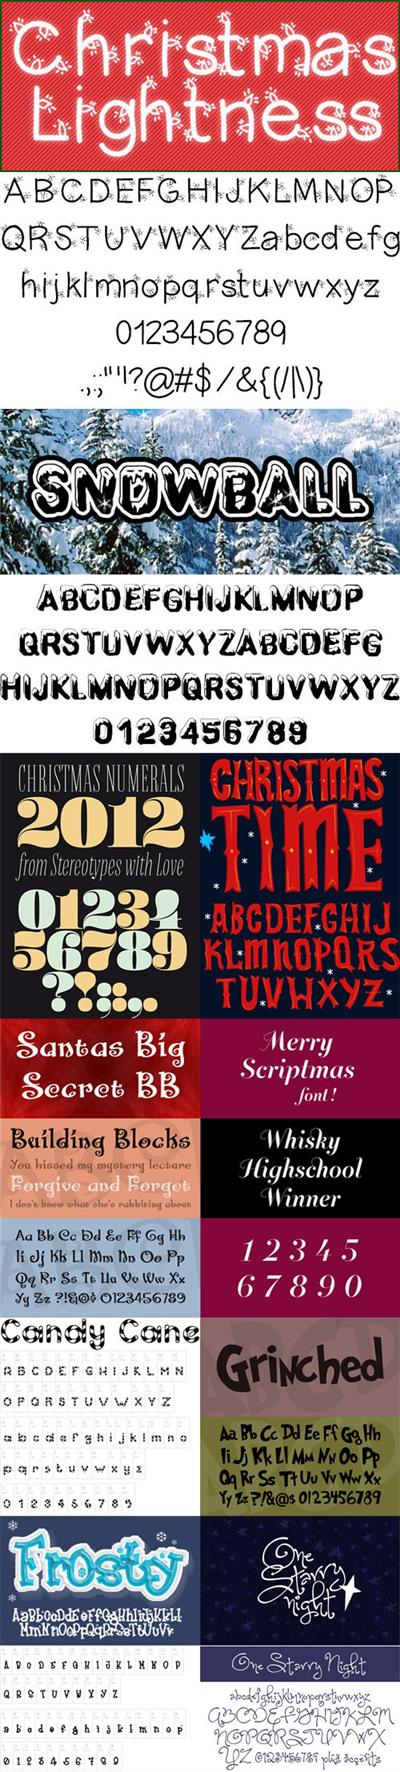 10 Christmas Fonts - 2017 Festive Holiday Fonts